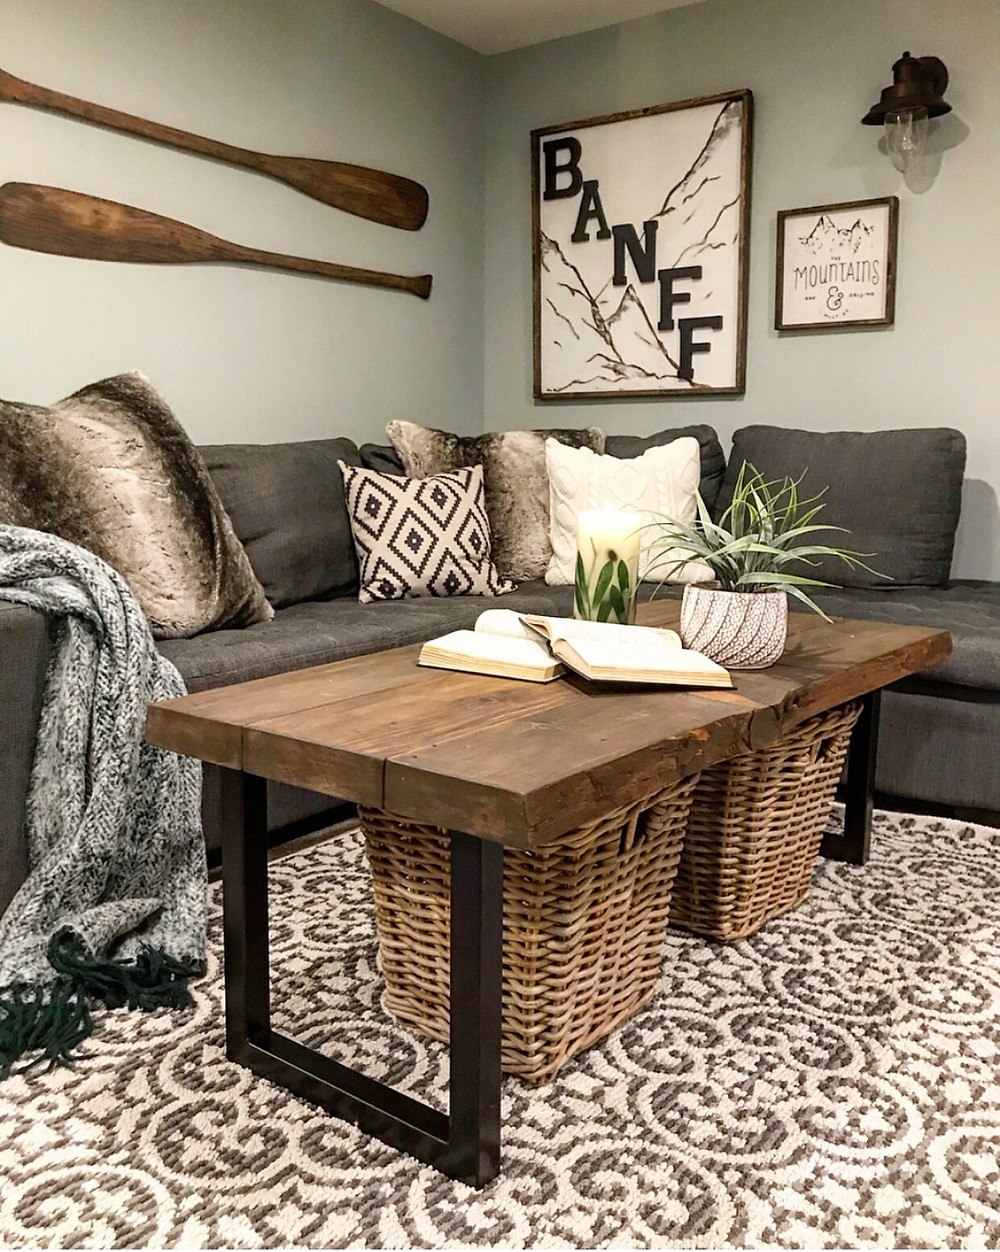 Live |Edge coffee table in basement living toom